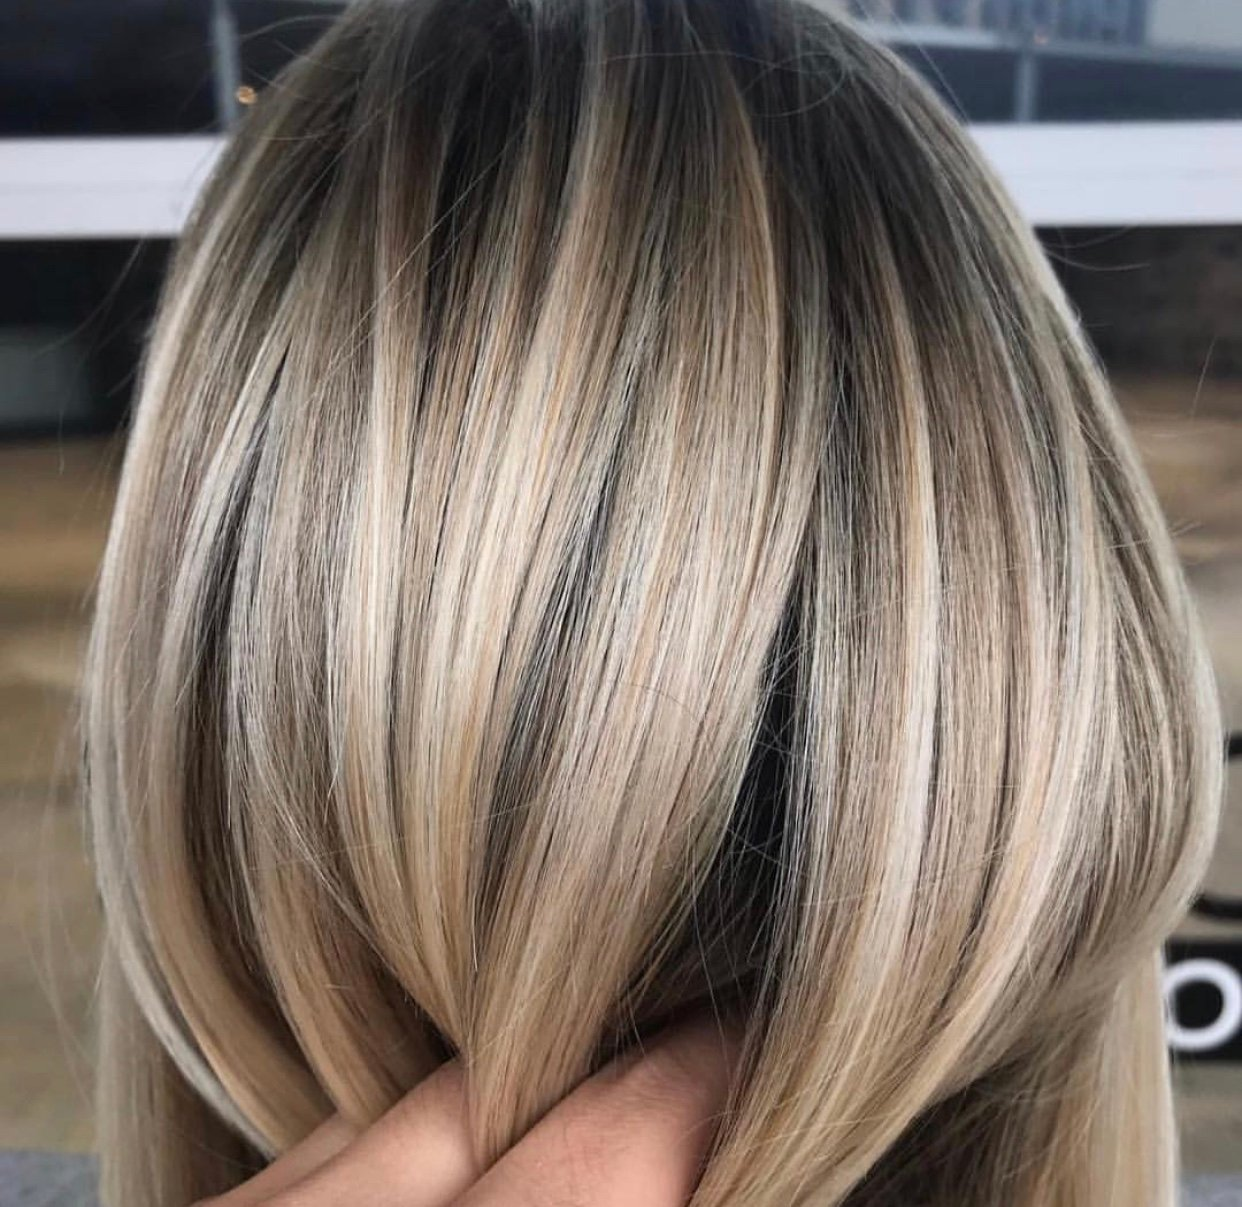 @hairbydotty